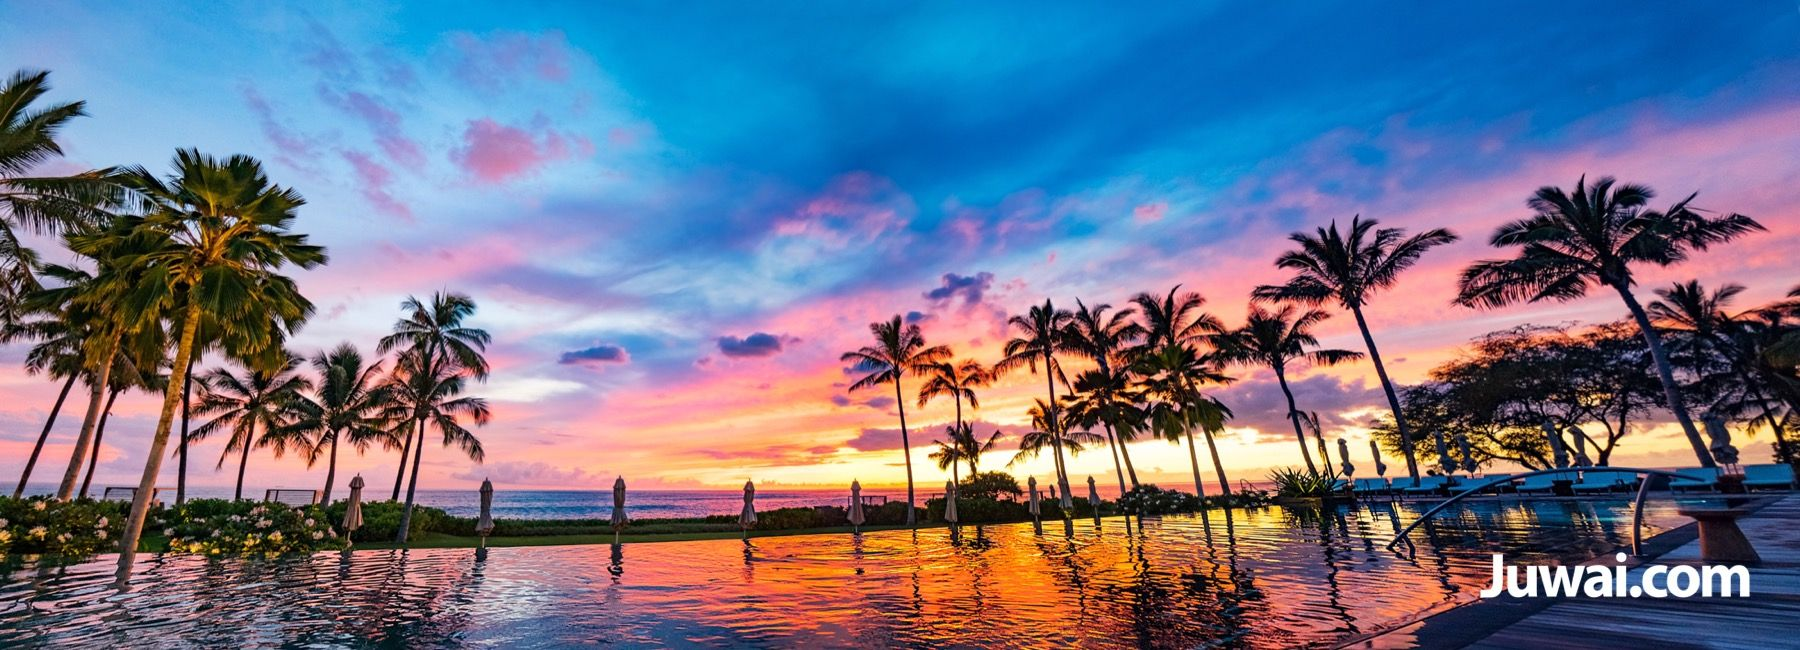 Why Chinese Are Eyeing Real Estate In Hawaii Juwai Com